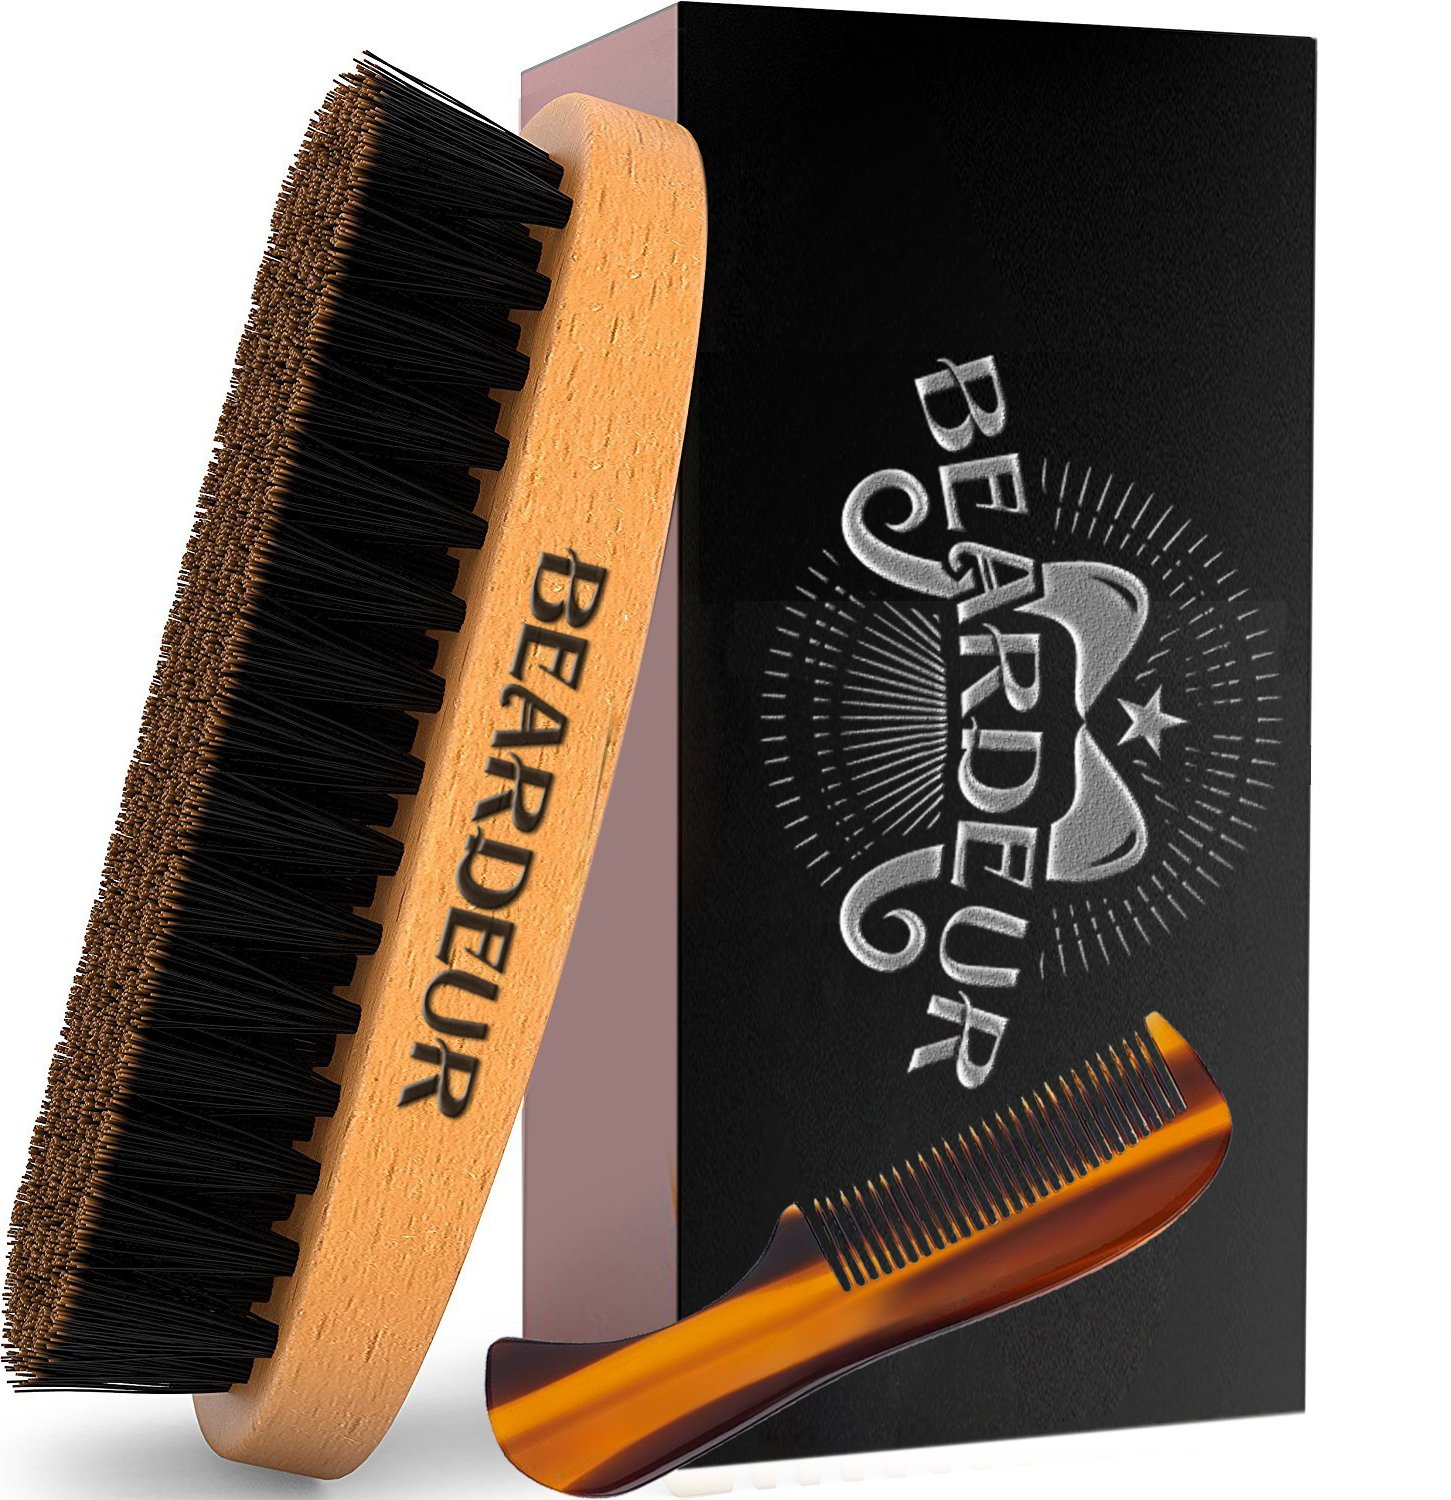 Beard Brush, Best Natural Wooden Hair Brush For Men, 100% Firm Black Wild Boar Bristle, Use with Balm & Beard Oil to Style & Groom, Unique Vintage Packaging, Premium Military Style Palm Brush for Beard Care, Barbers Grooming Tool, Lifetime Guarante